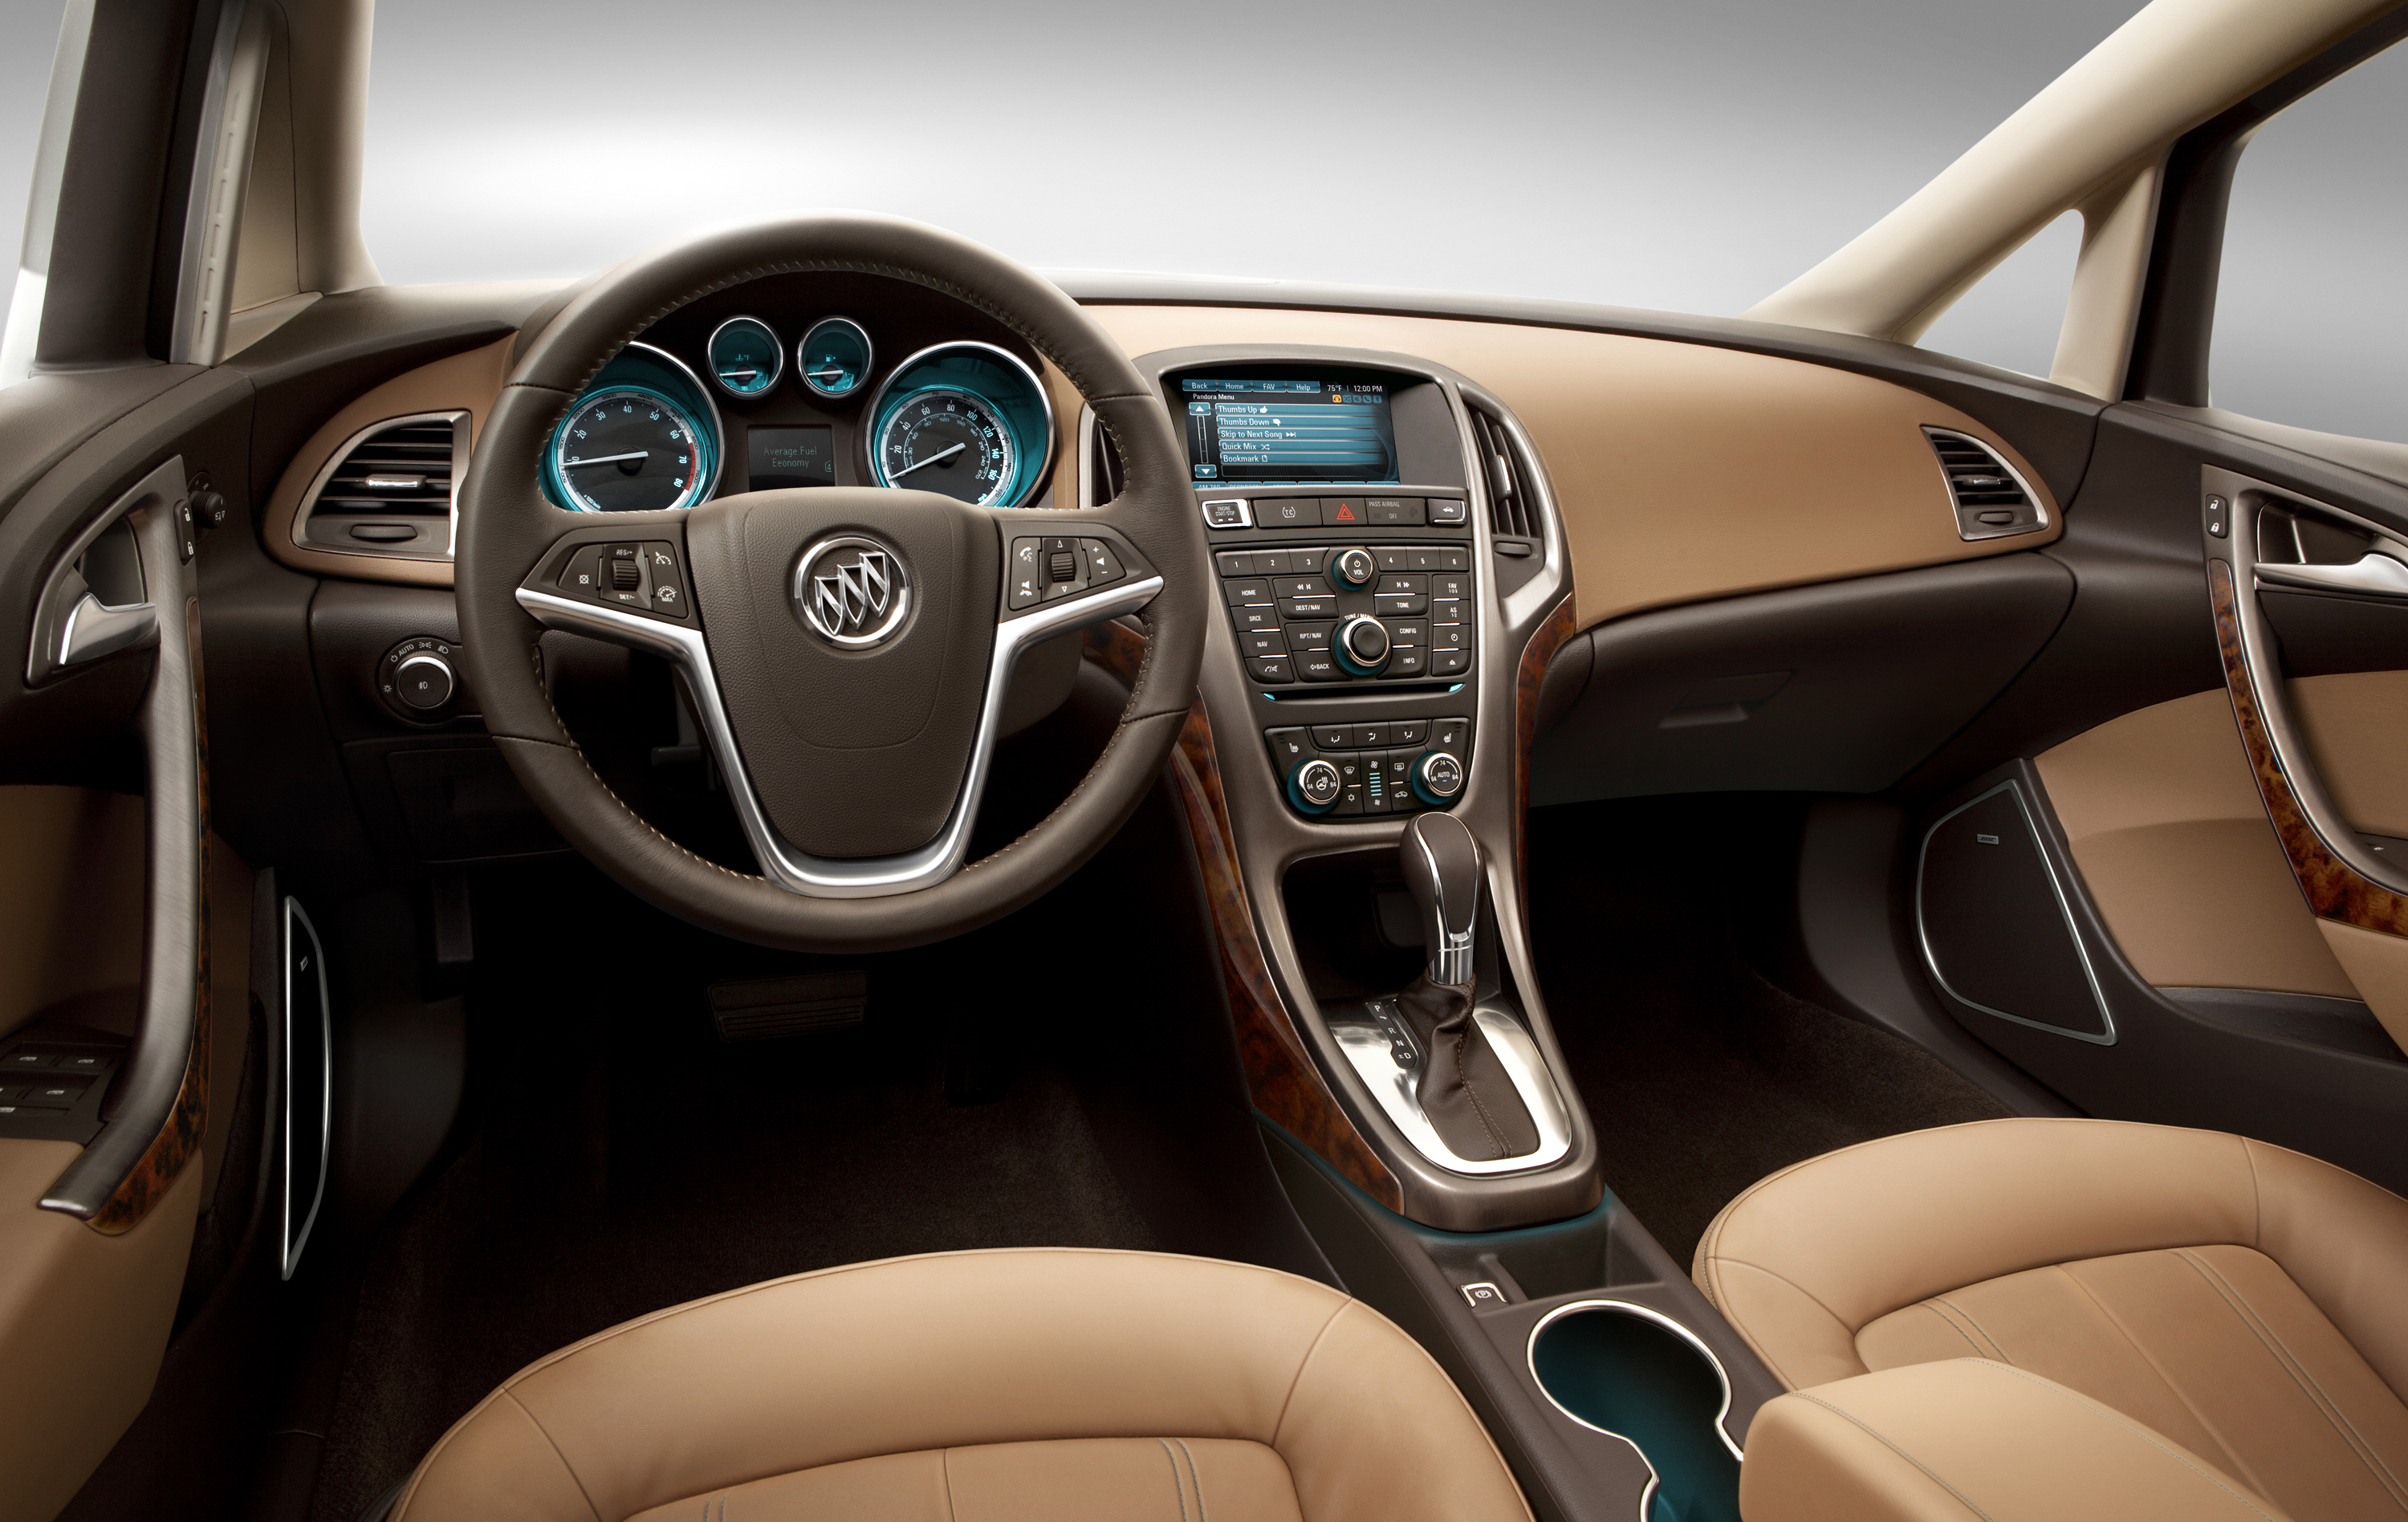 cars review dsc about truth buick the lacrosse